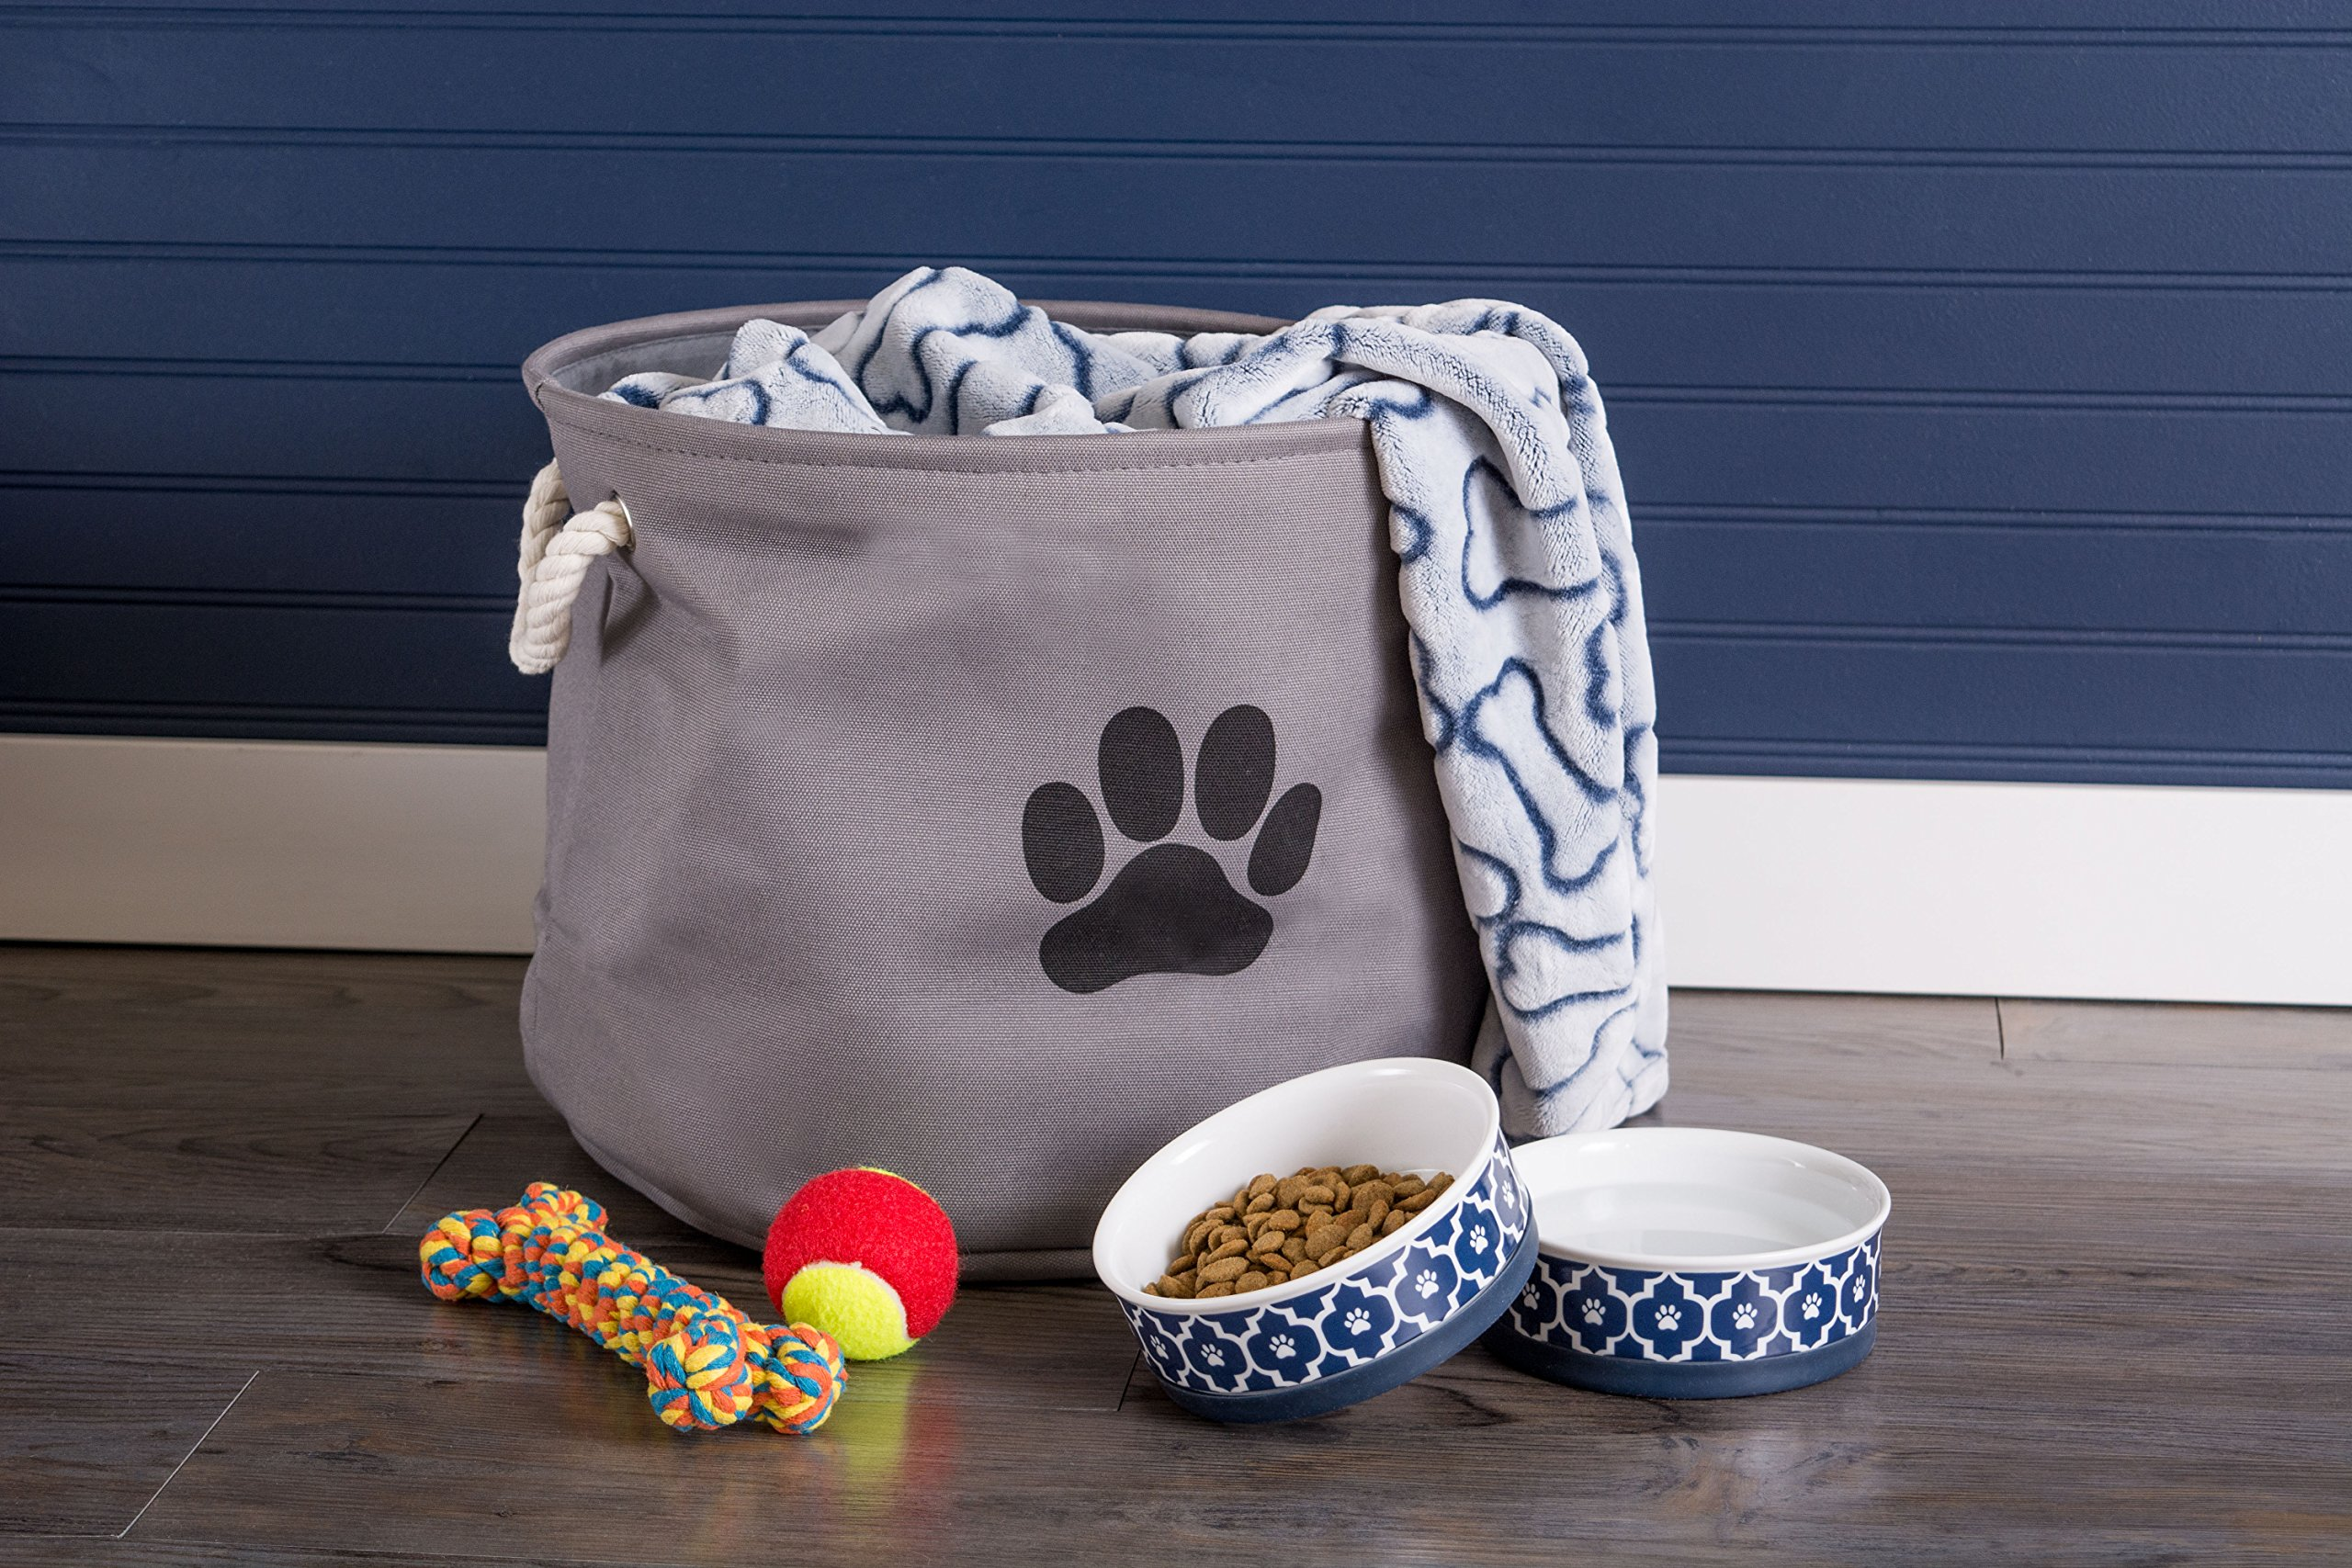 Bone Dry DII Medium Round Pet Toy and Accessory Storage Bin, 14.5''(Dia) x12(H), Collapsible Organizer Storage Basket for Home Décor, Pet Toy, Blankets, Leashes and Food-Gray with Black Paw by Bone Dry (Image #5)